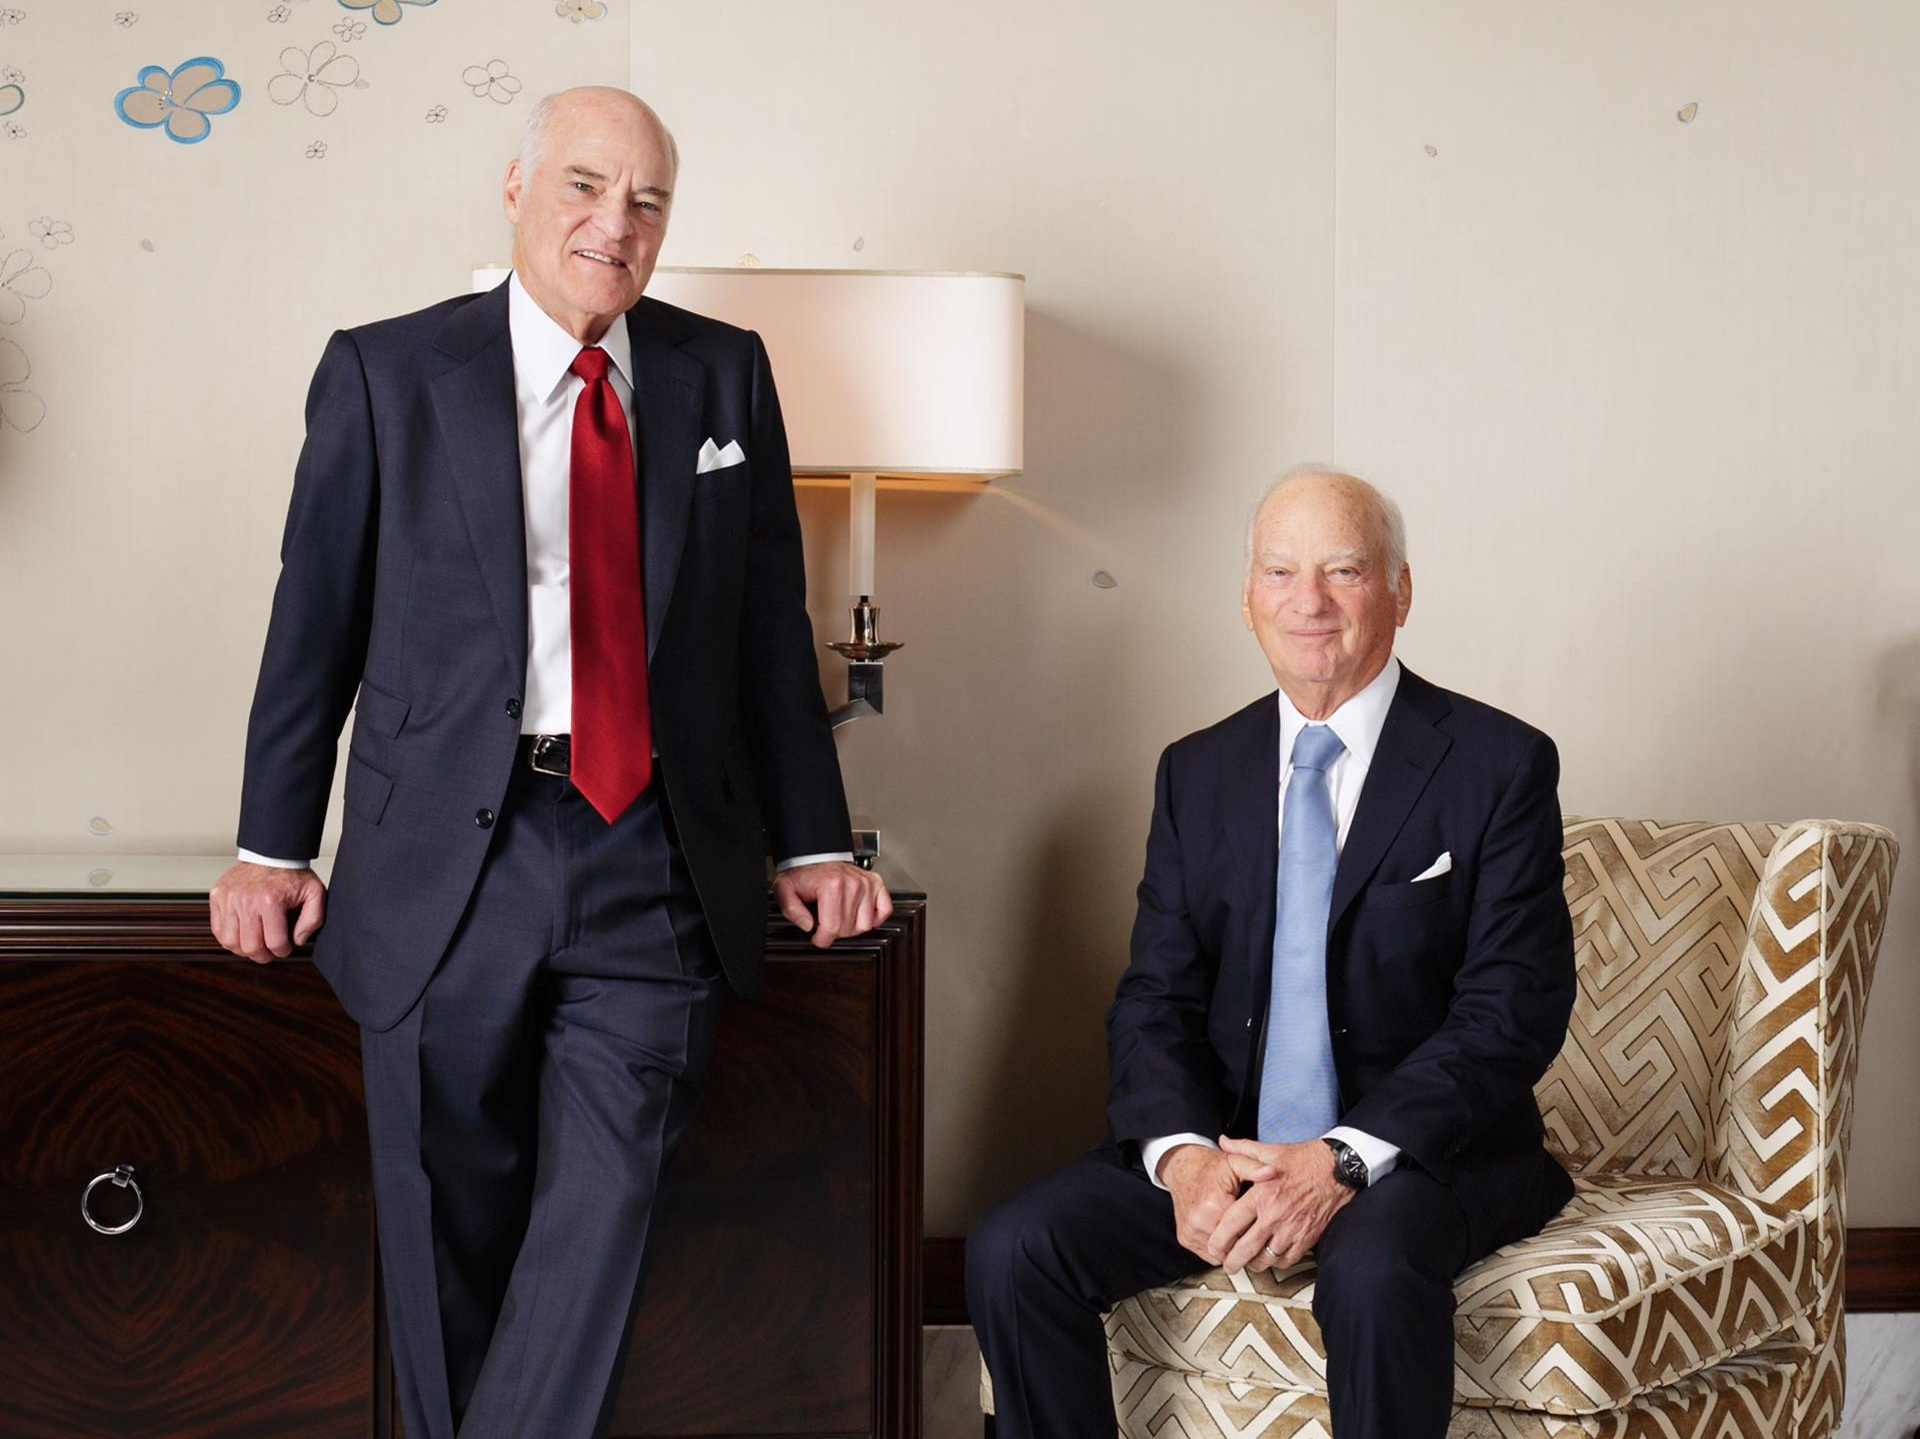 Gentlemen at the Gate - With trillions pouring in, KKR and its peers must build up rather than break up…